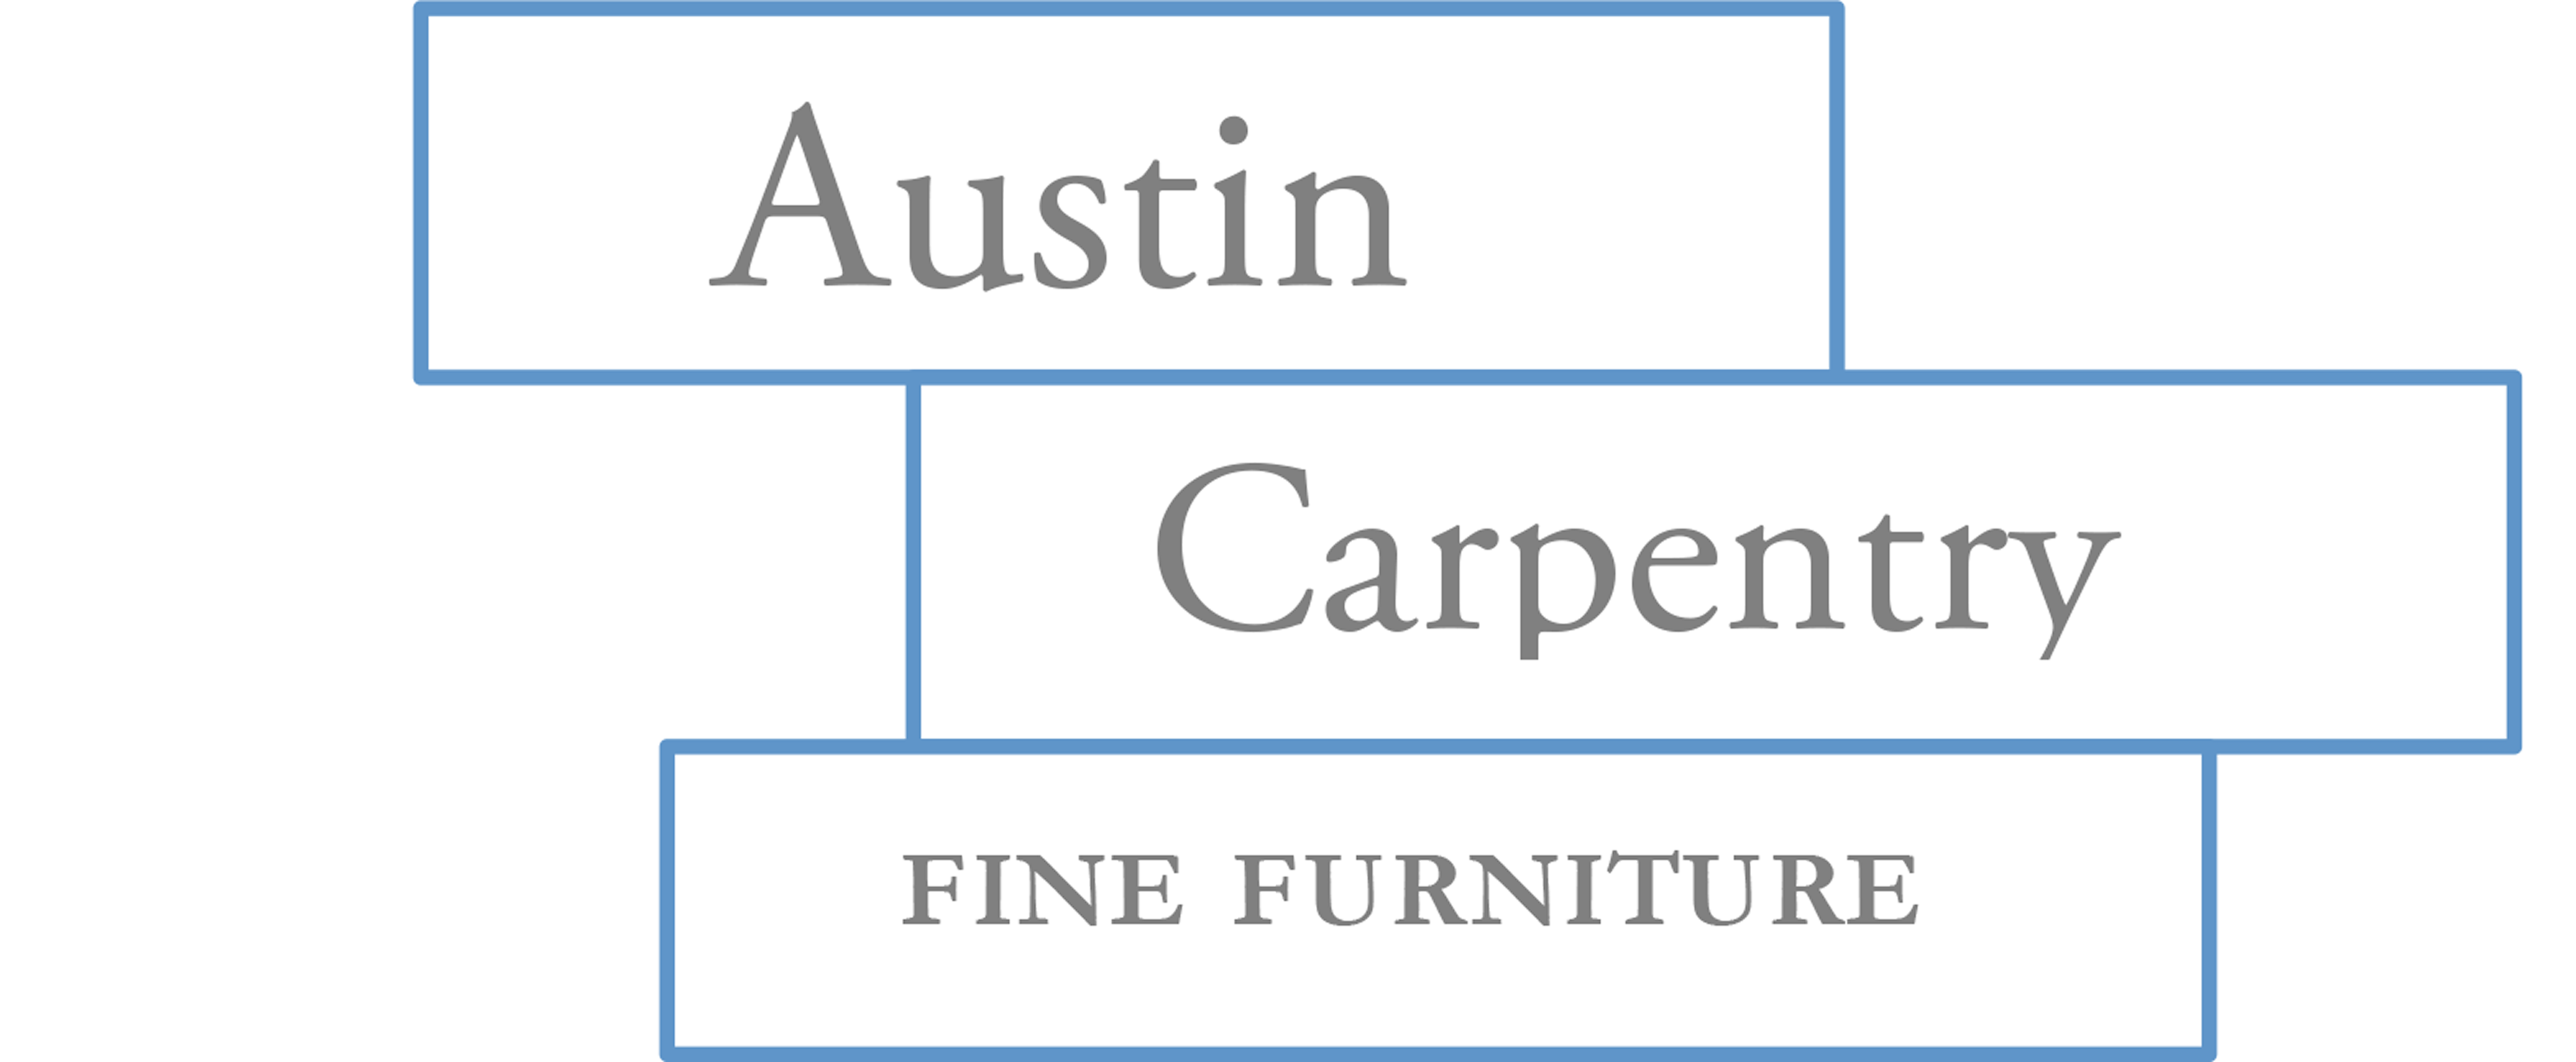 Austin Carpentry